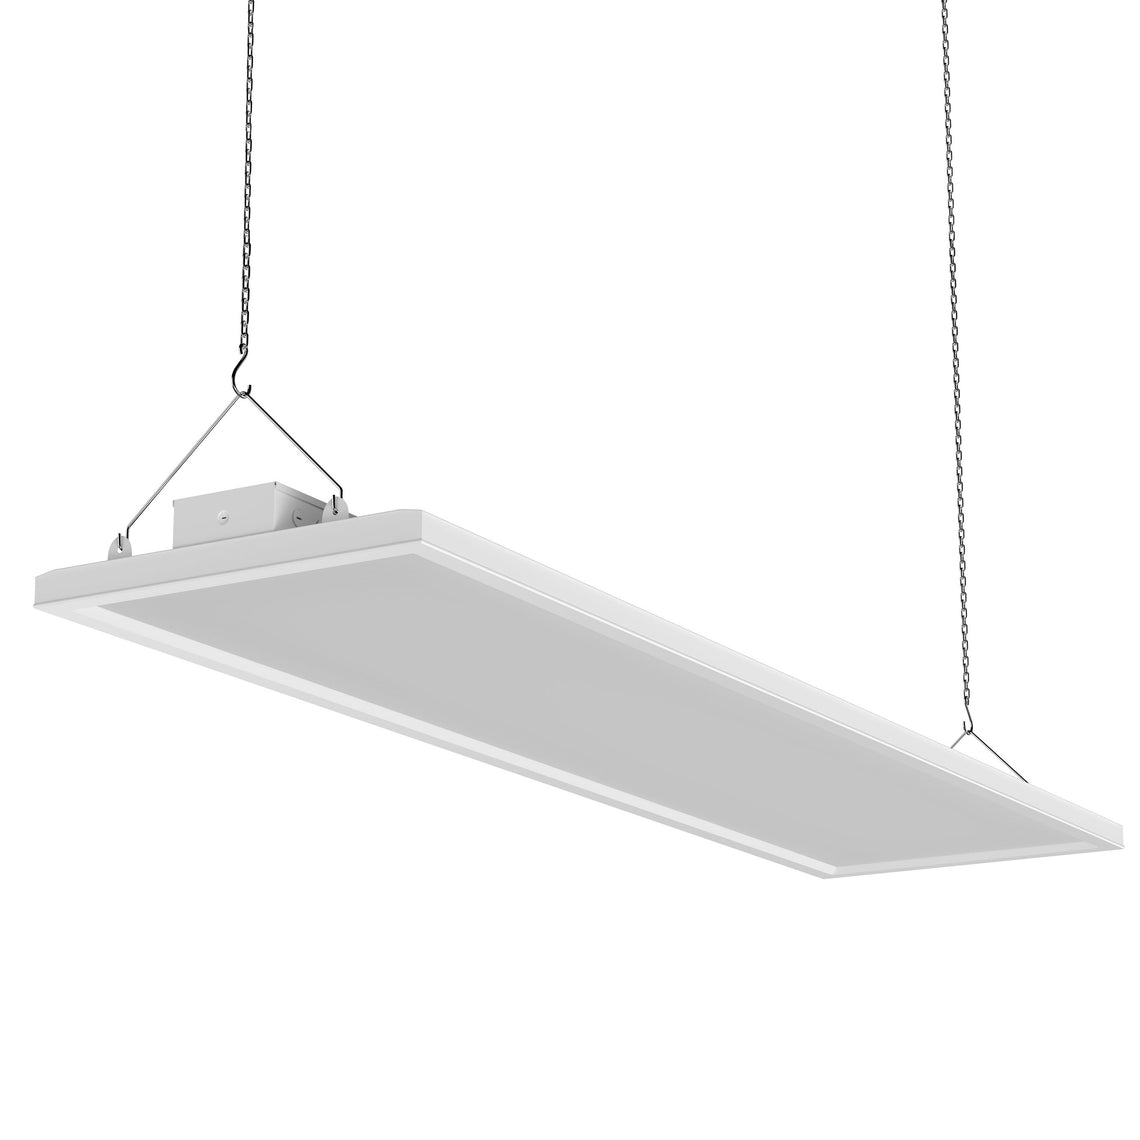 4ft LED Linear High Bay Light, 225W, 800 Watt Replacement, 30150lm, Dimmable, UL, DLC Listed